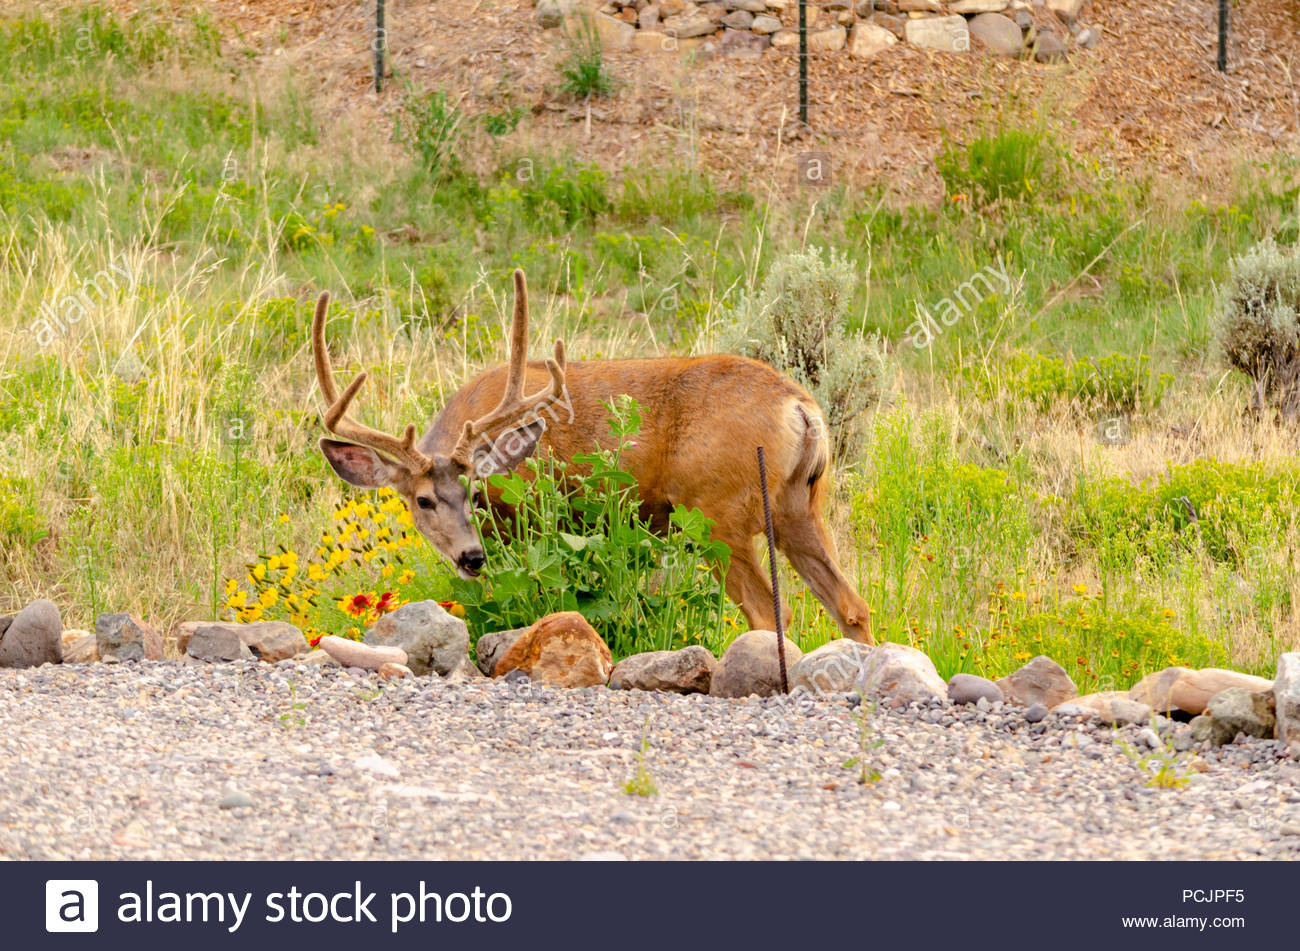 Mule Deer buck in summer eating planted garden flowers by home owner, Ridgway Colorado US. Photo taken in August. - Stock Image